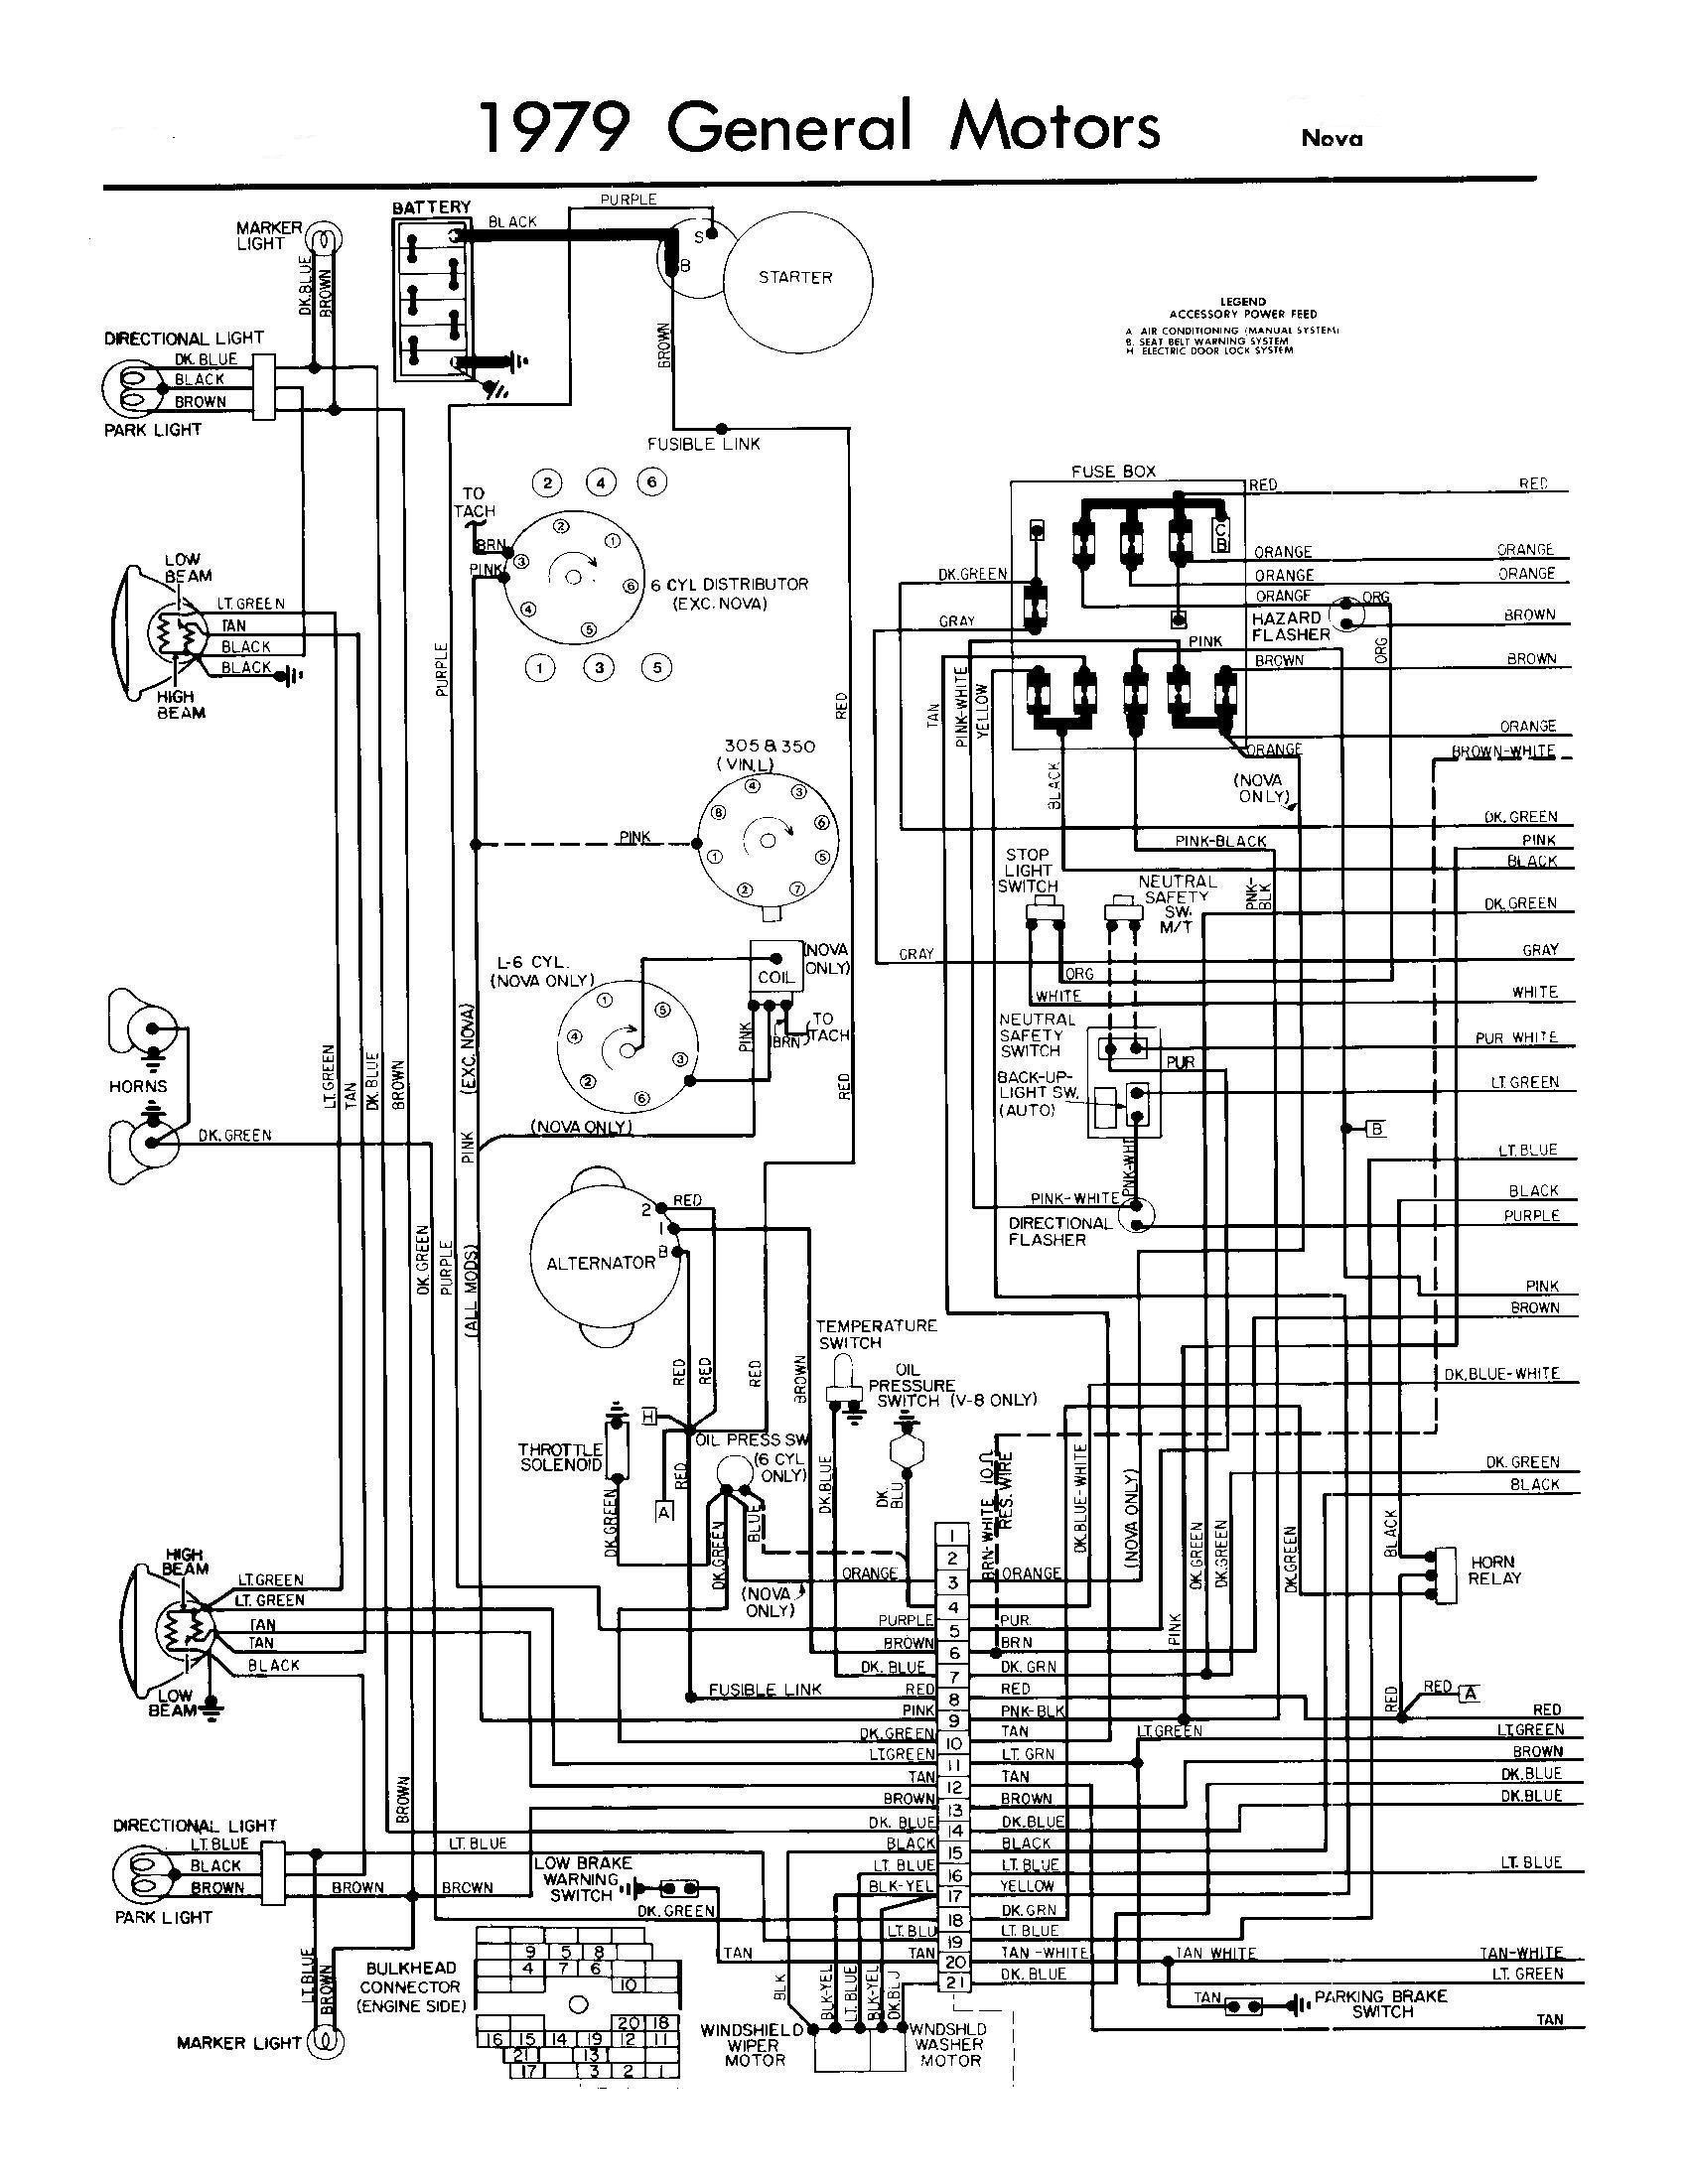 2001 International 4900 Wiring Schematic